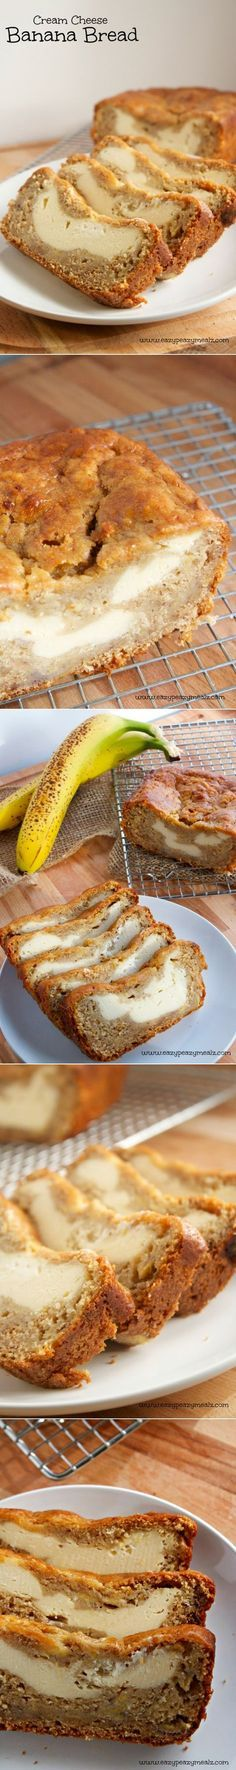 Cream Cheese Banana Bread: Have you tried the whole cream cheese inside of bread thing? It makes a bread like pumpkin or banana taste a little like cheesecake; and I love cheesecake! But it's also ~such~ an easy & fun way to change up your banana bread. Just grab a decadent slice & go!